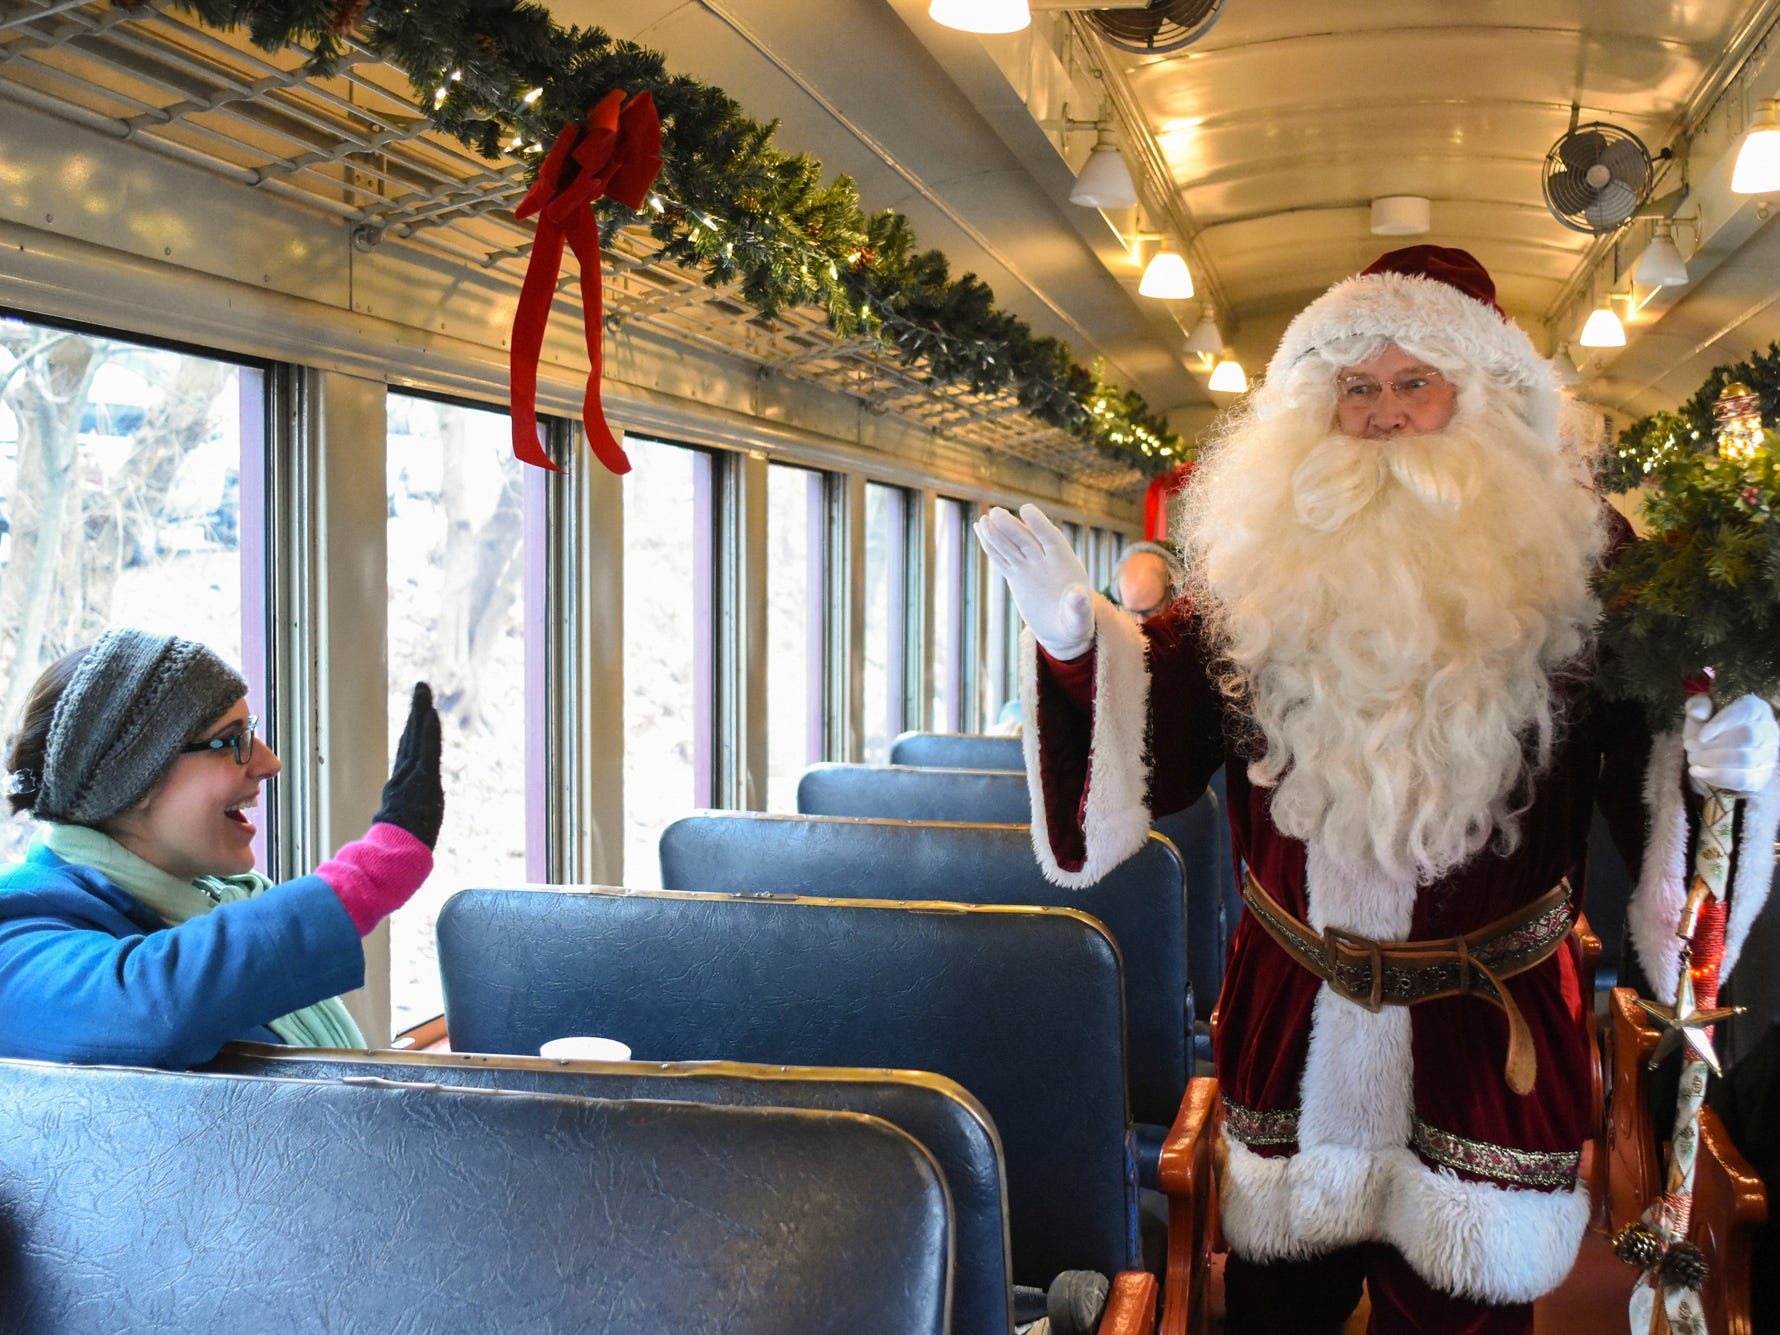 Carrie Nedick, of Fogelsville, Pa., waves to Santa while he walks through the train car after boarding the Santa Claus Steam Train Ride at the Minersville Train Station in Minersville, Pa., on Saturday, Dec. 1, 2018.